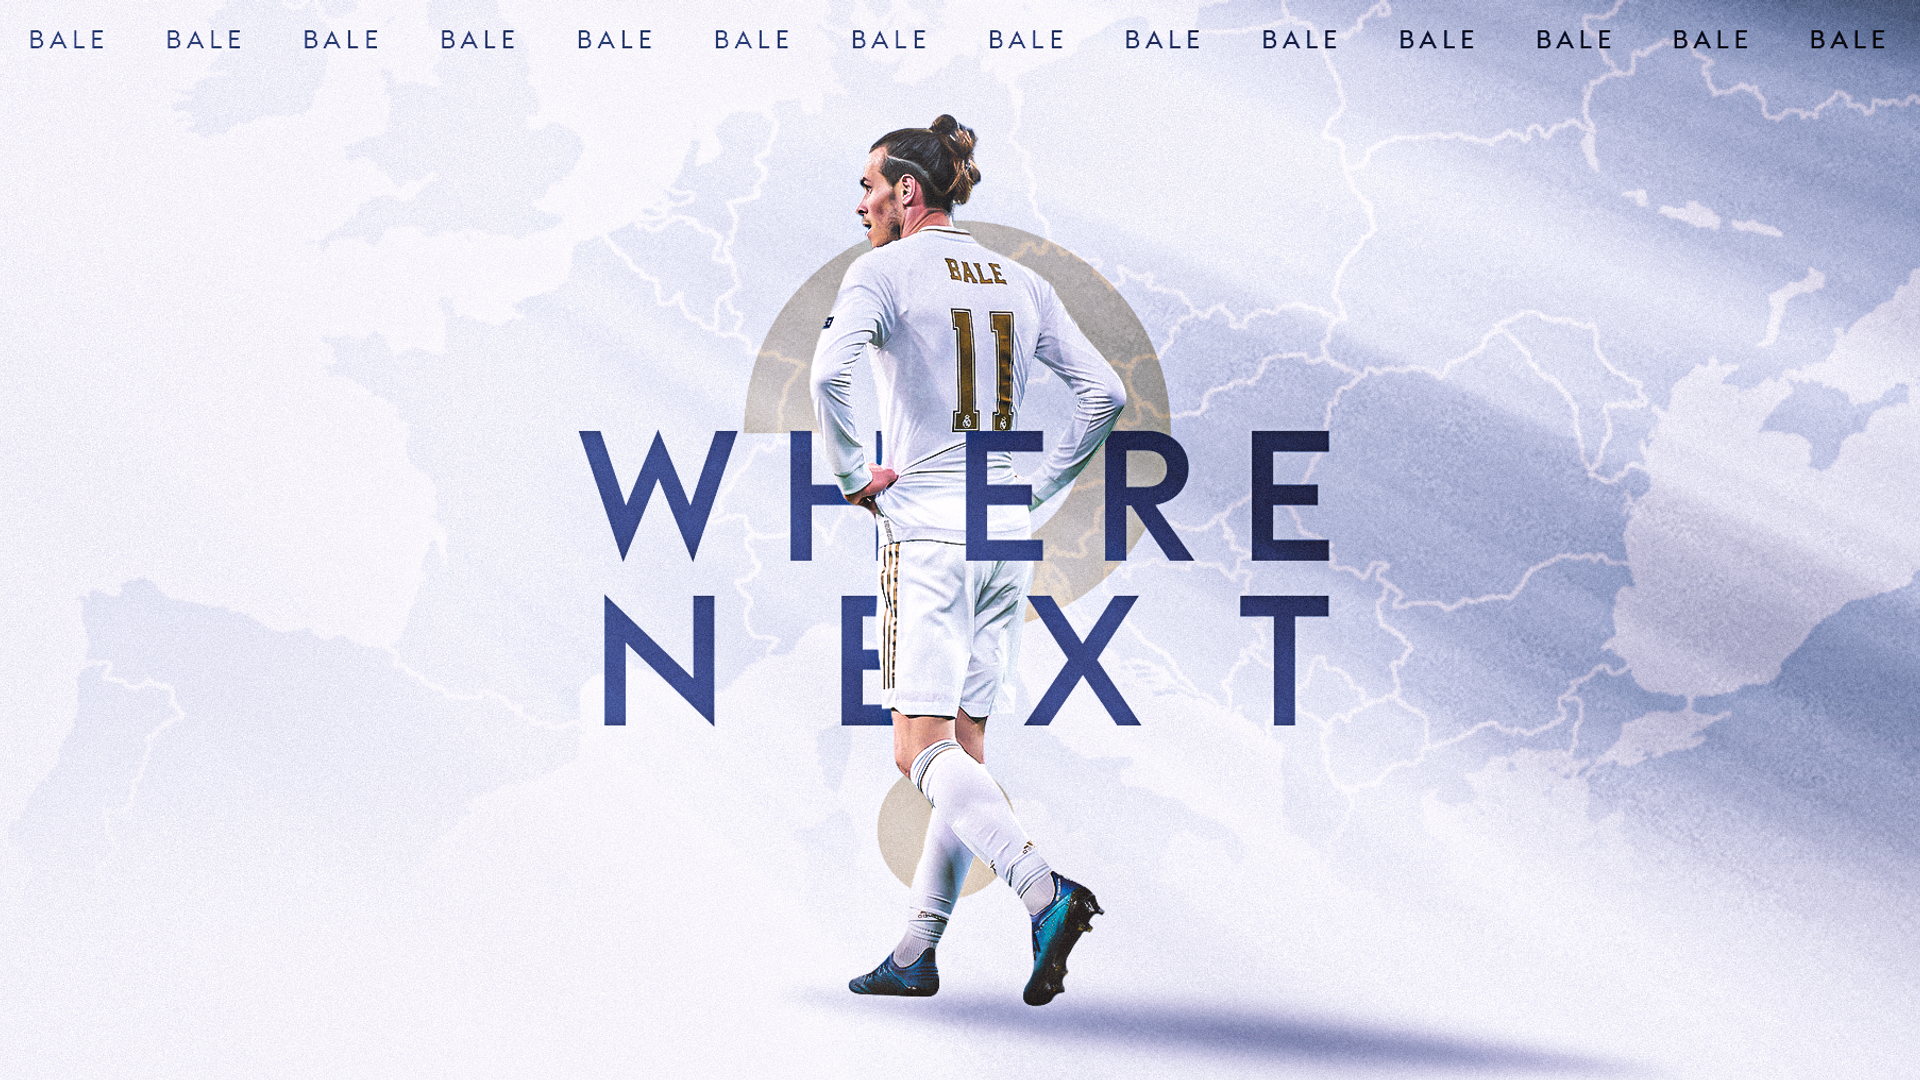 Where could Bale go next?